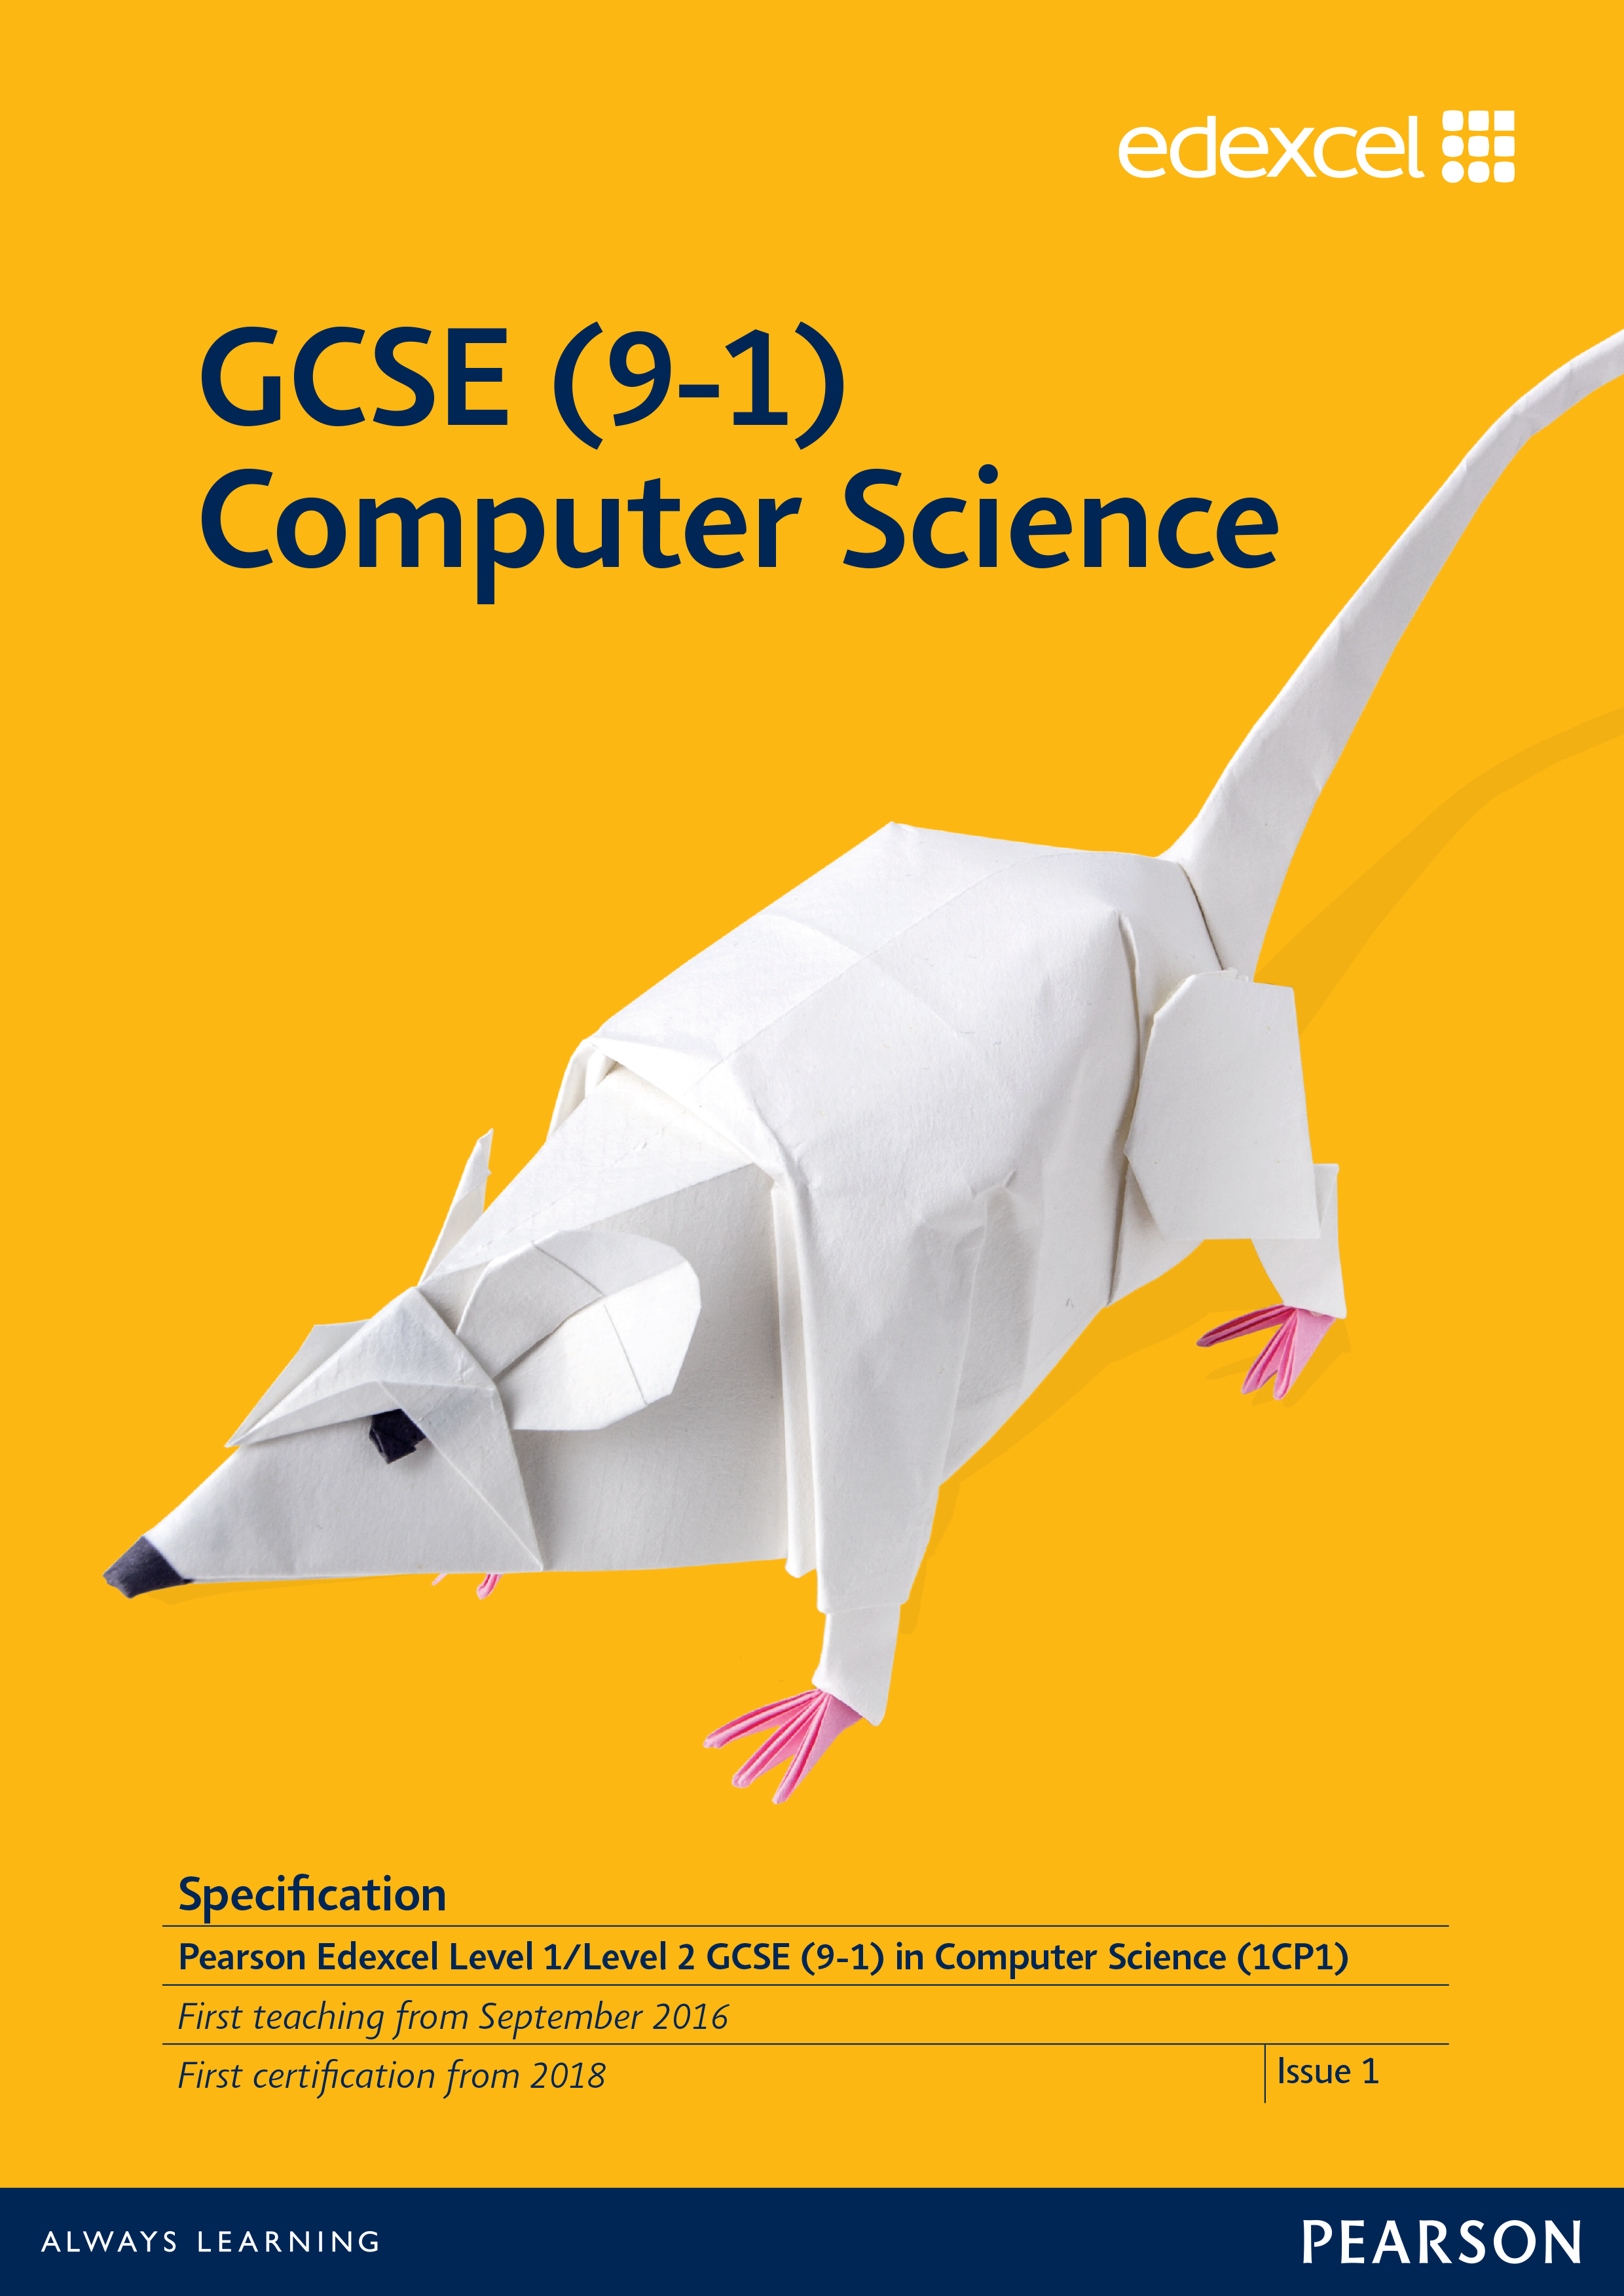 Link to Edexcel GCSE Computer Science (2016) specification page